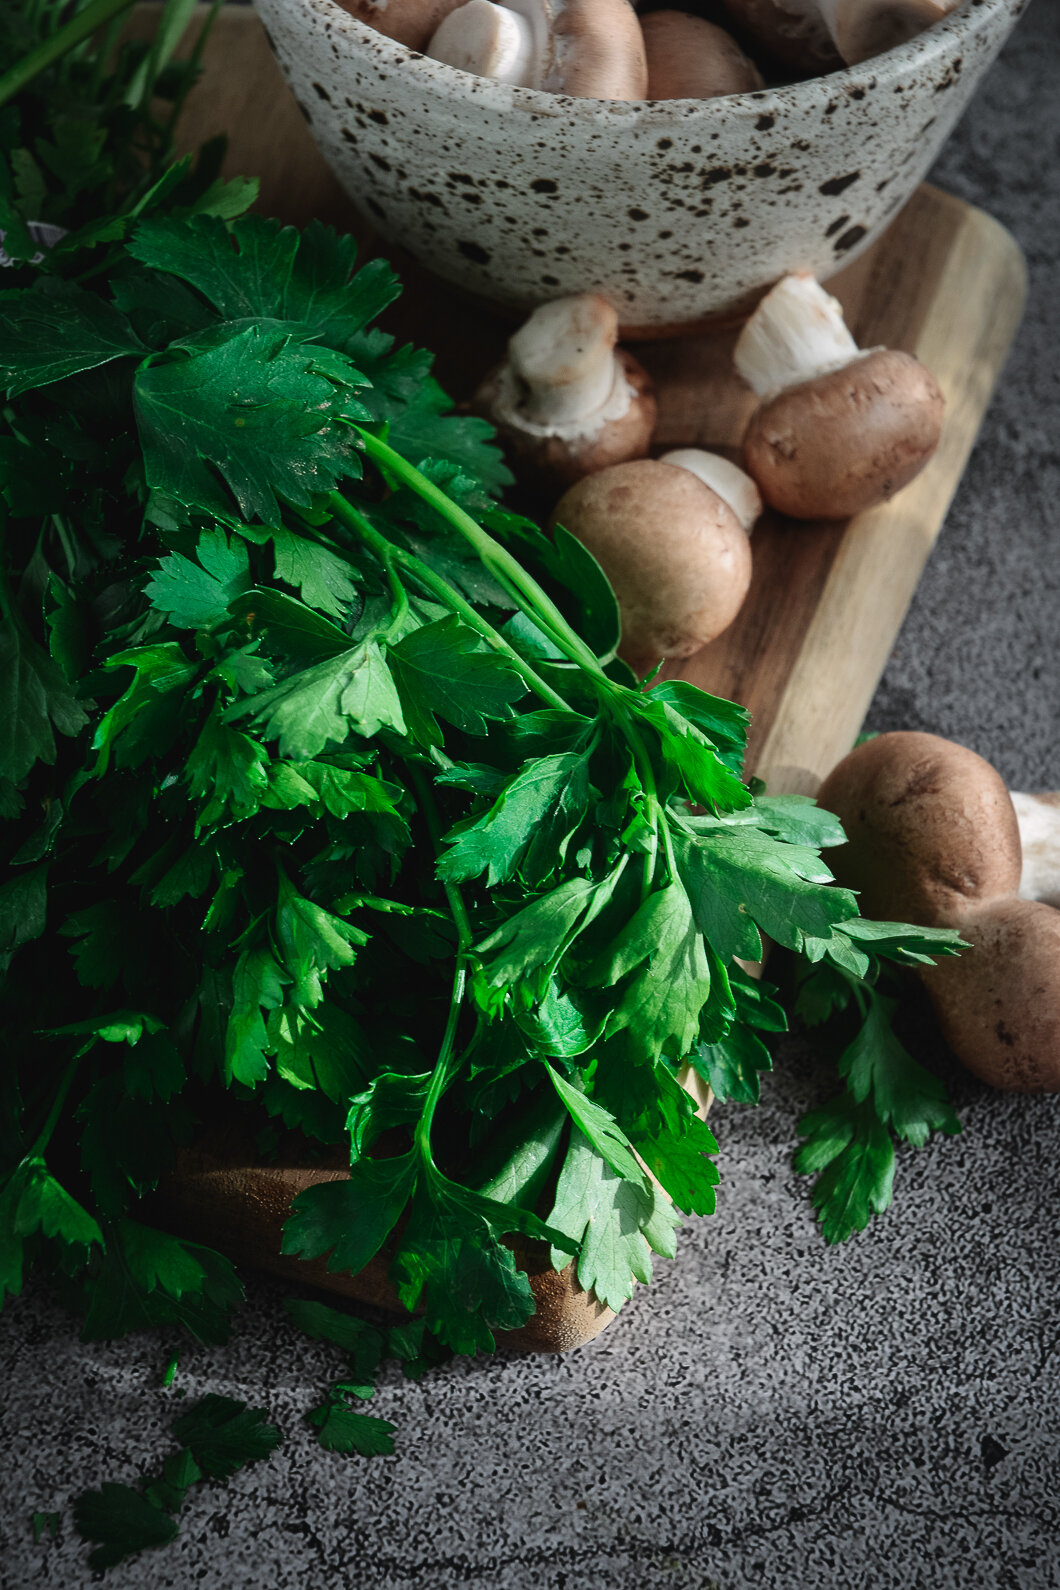 Mushrooms in bowl with parsley on cutting board